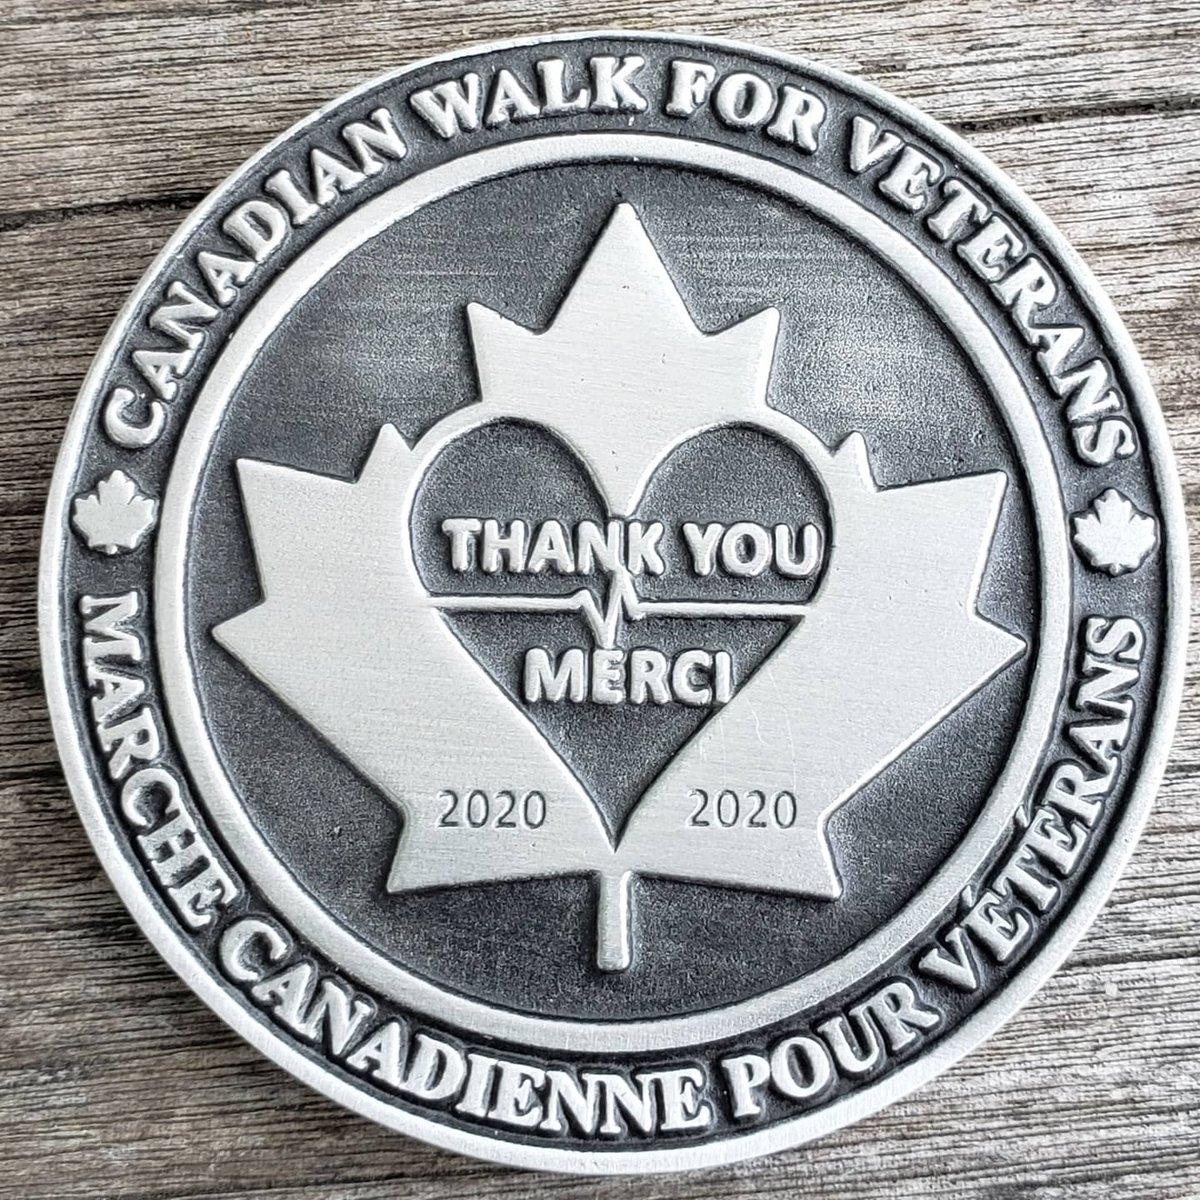 @Canwalk4vets 2020 Challenge Coin Stay tuned for a big announcement coming tomorrow!  #veteran #veteranadvocate #vetshelpingvets #serviceandsacrifice #walkandtalk #shoulder2shoulder #challengecoin #canwalk4vets #rca #rcn #rcaf #firstresponders #frontlineworkers #essentialworkers https://t.co/k7srIuW8A3